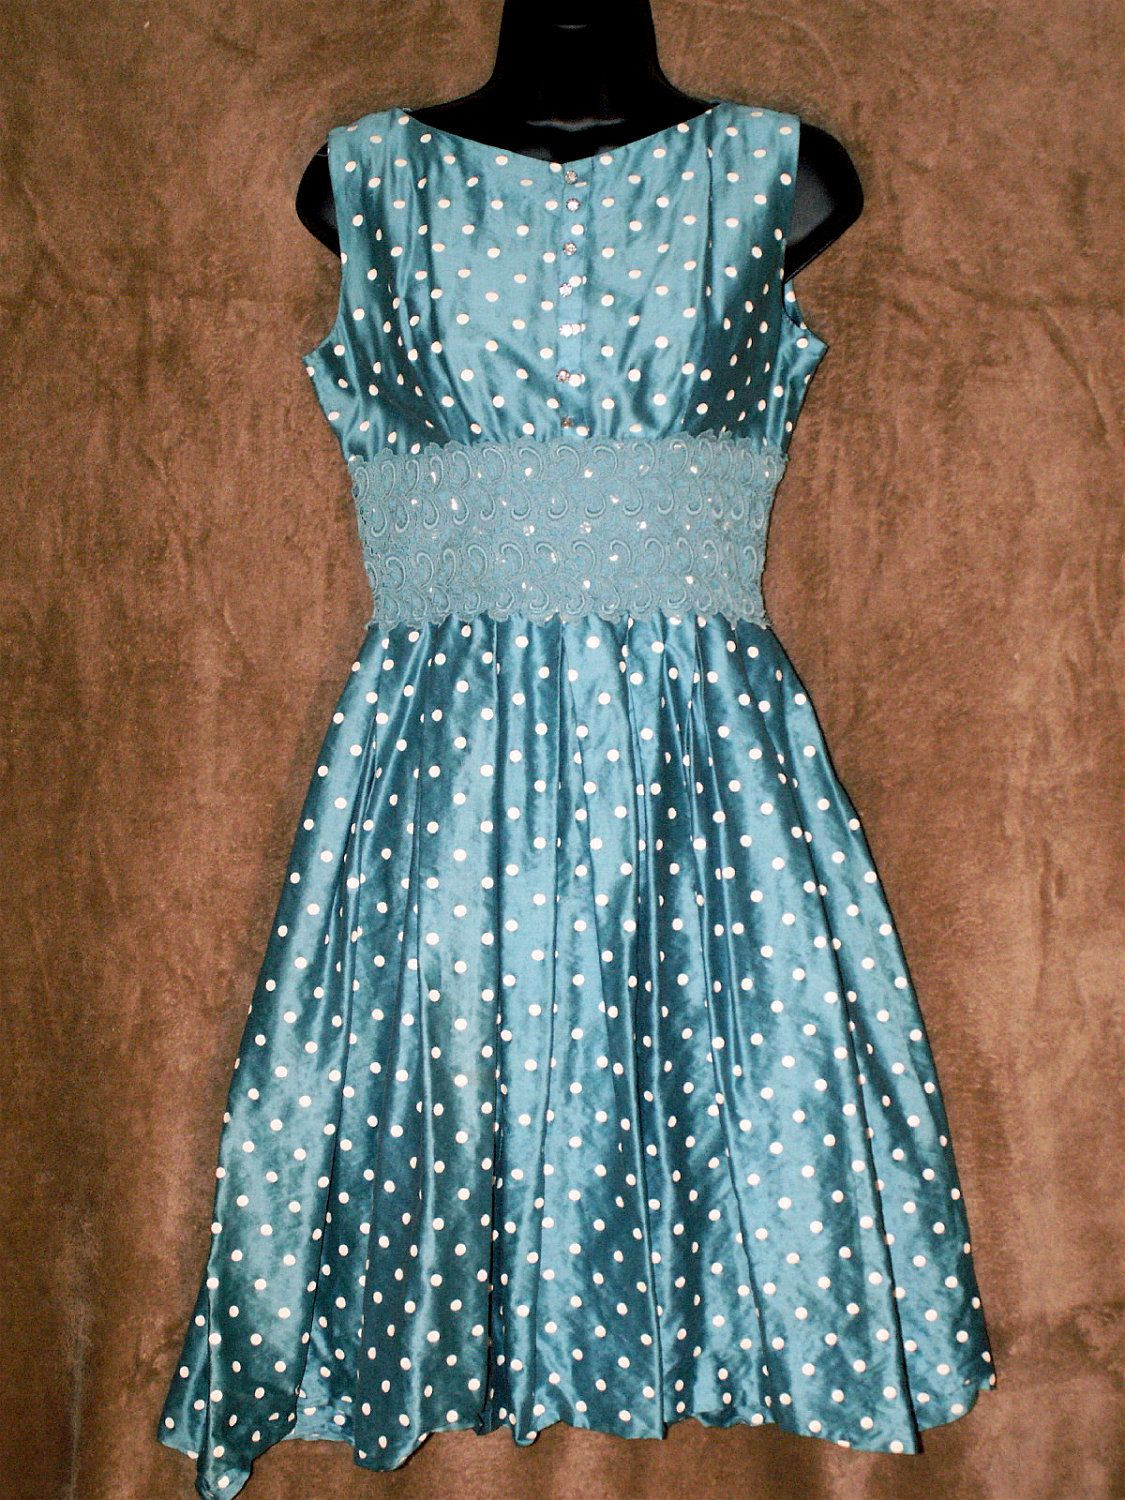 SALE Hand sewn Vintage 50s Lovely Turquoise Polksdot party dress ...